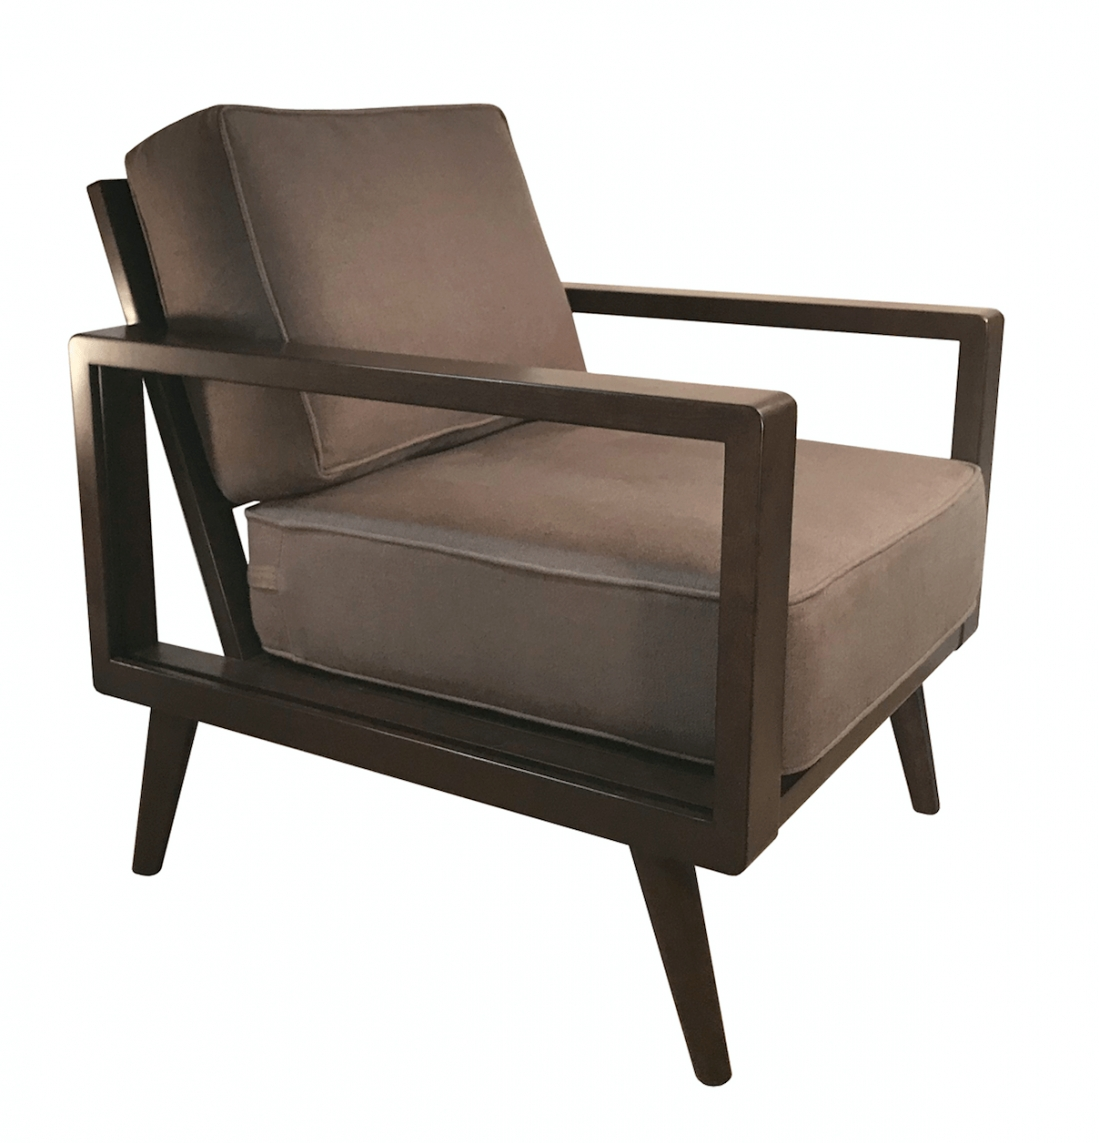 Designer Modern Furniture Store | Twist Modern intended for Mid Century Lounge Chair